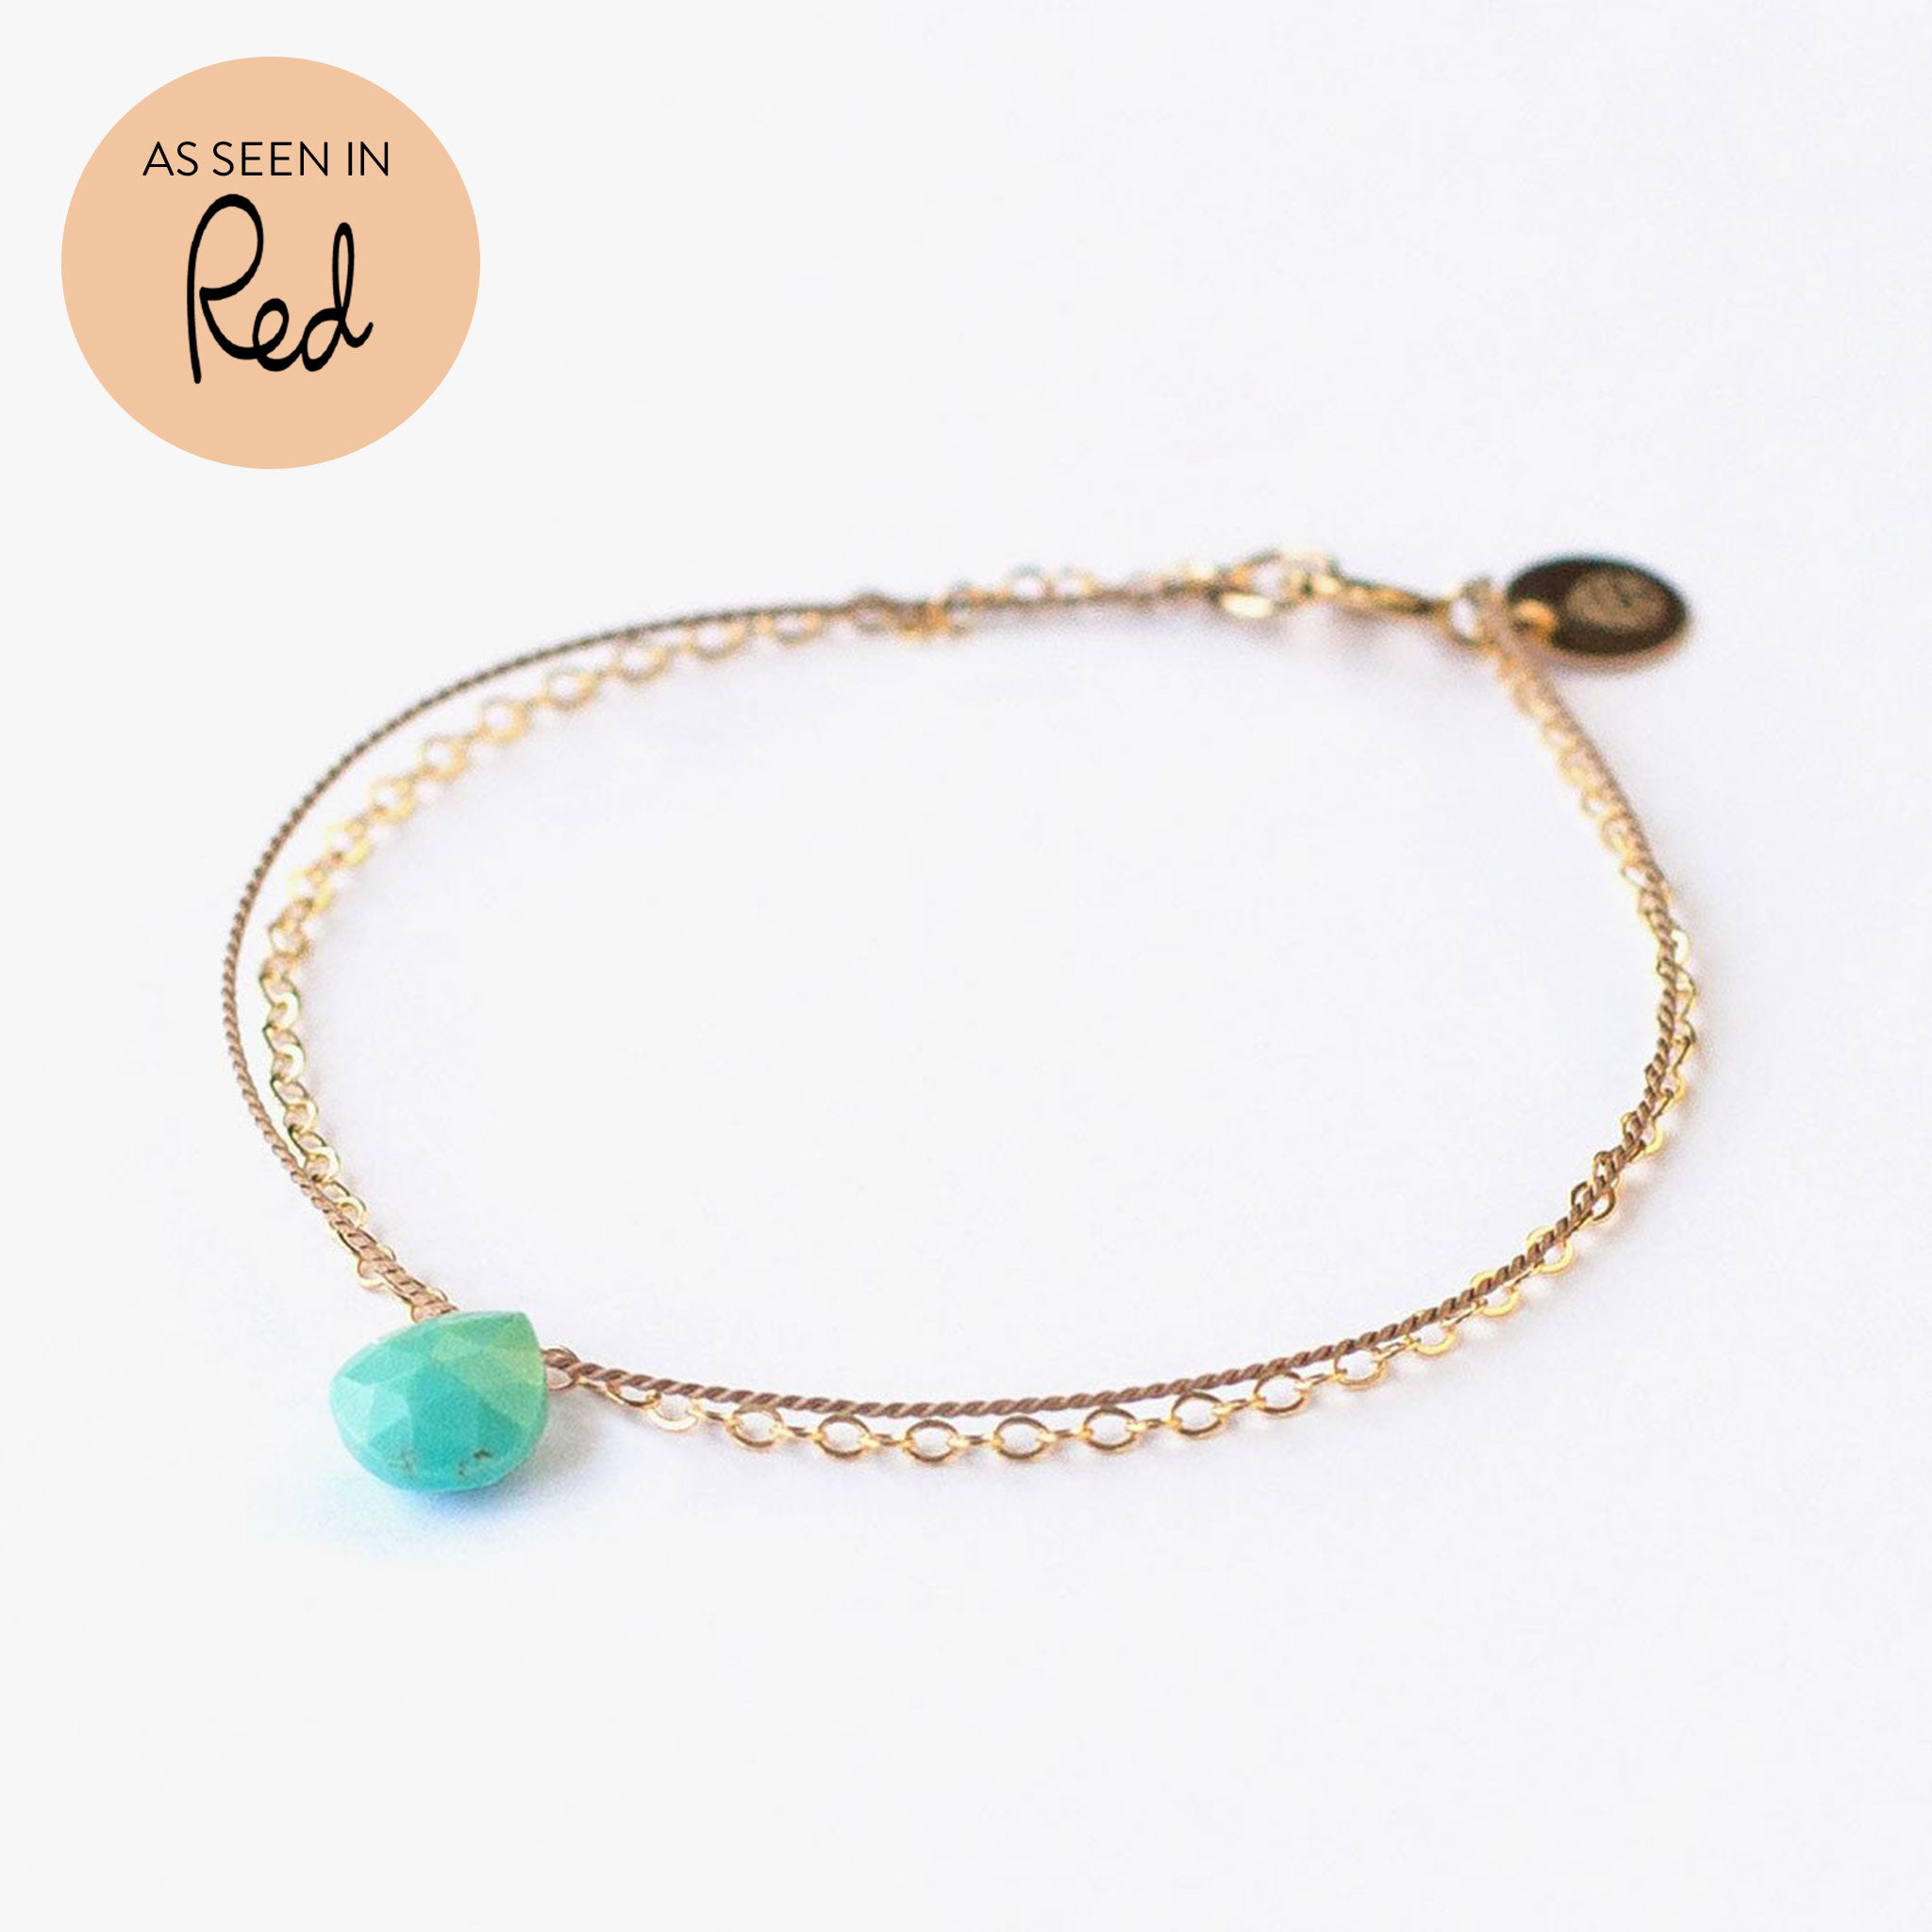 Wanderlust Life Ethically Handmade jewellery made in the UK. Minimalist gold and fine cord jewellery. throat chakra, vishuddha, gold & silk arizona turquoise bracelet. As seen in Red magazine.